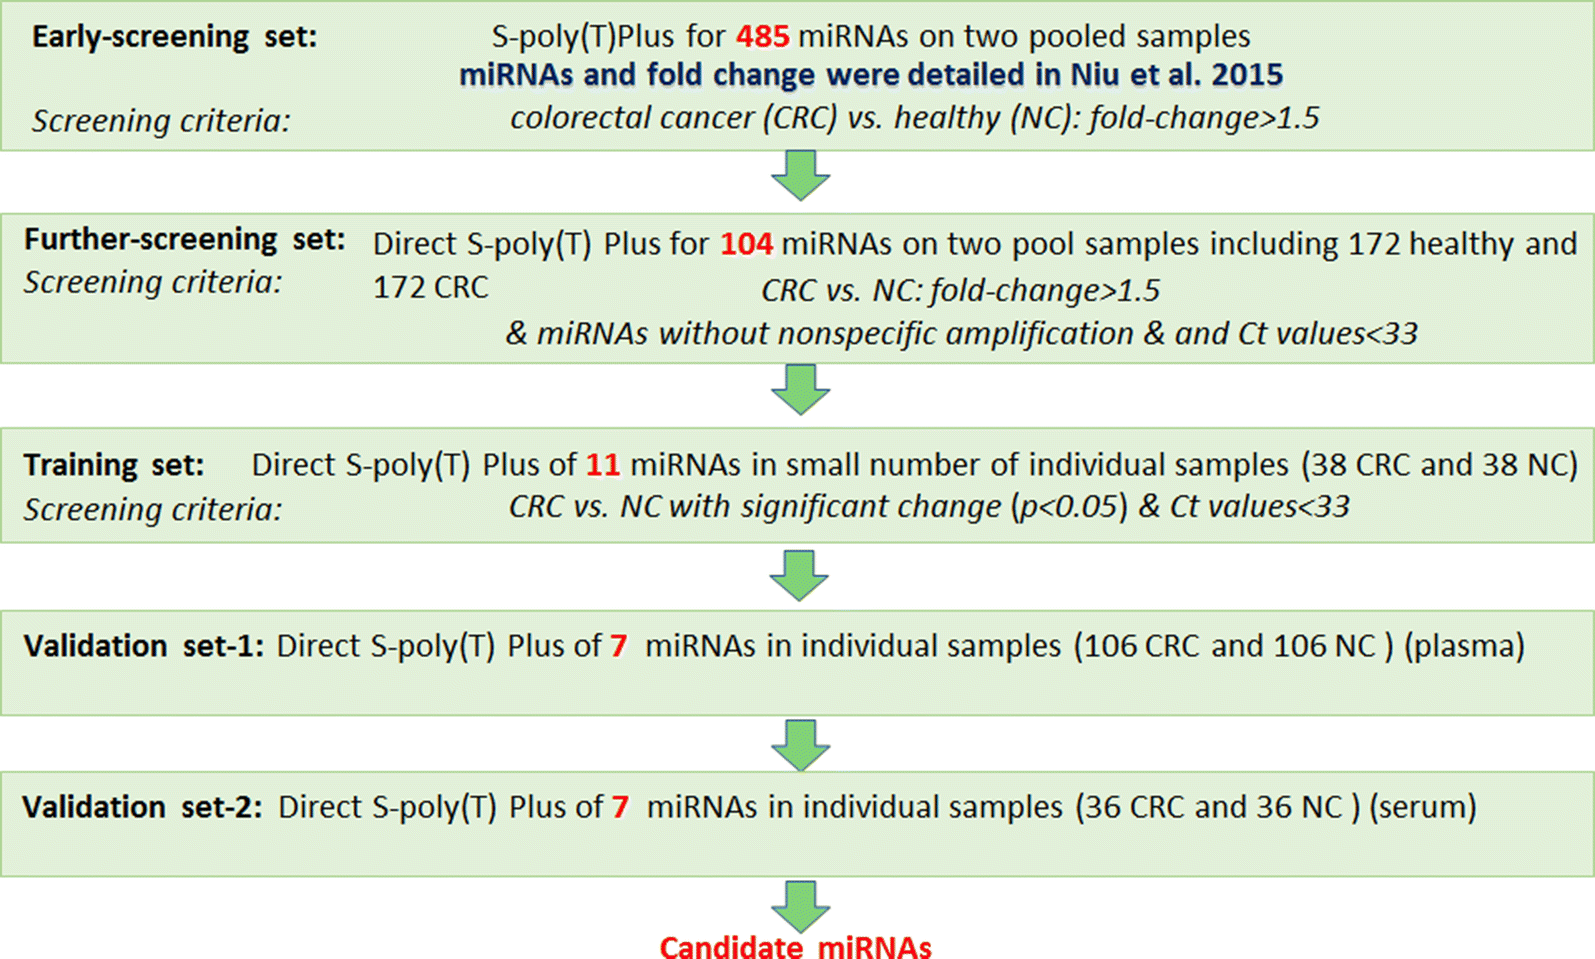 Direct S Poly T Plus Assay In Quantification Of Micrornas Without Rna Extraction And Its Implications In Colorectal Cancer Biomarker Studies Journal Of Translational Medicine Full Text